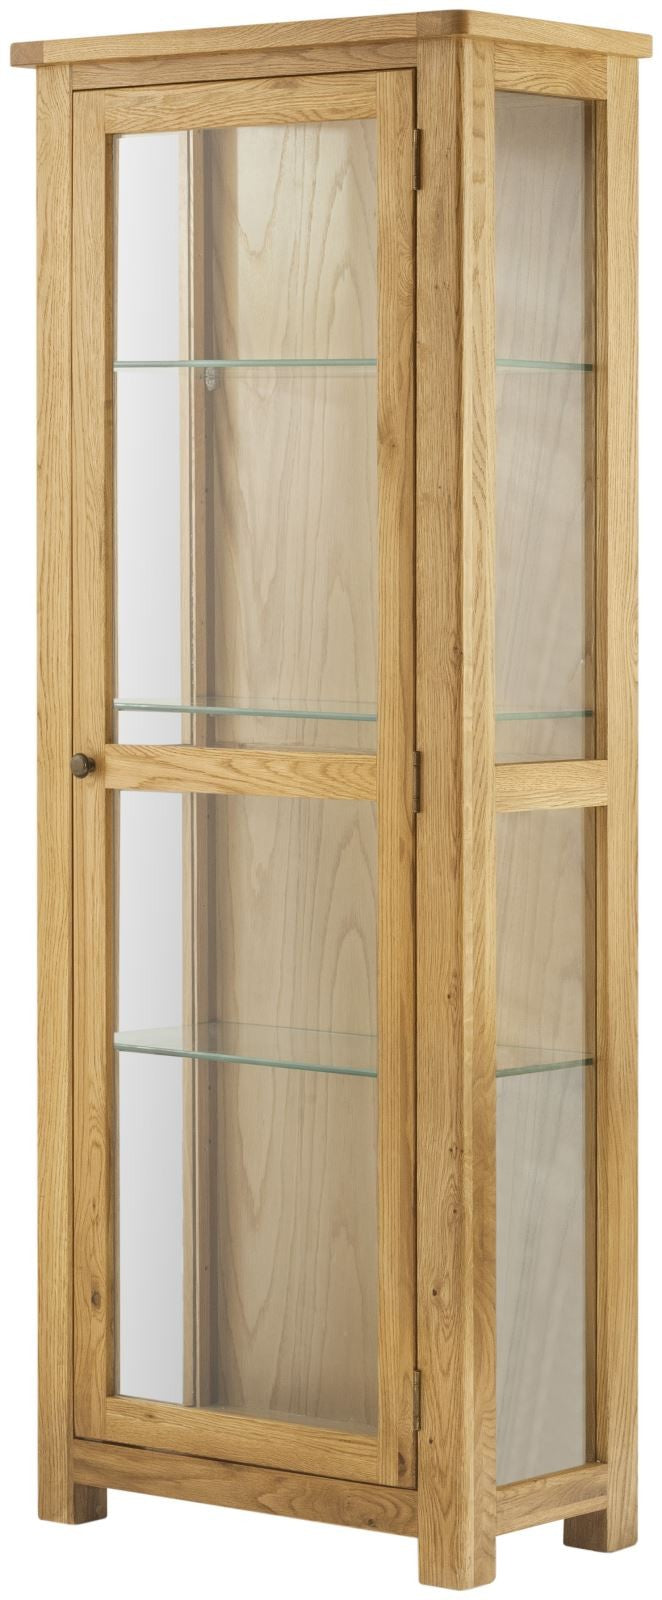 Cottage Display Cabinet Oak